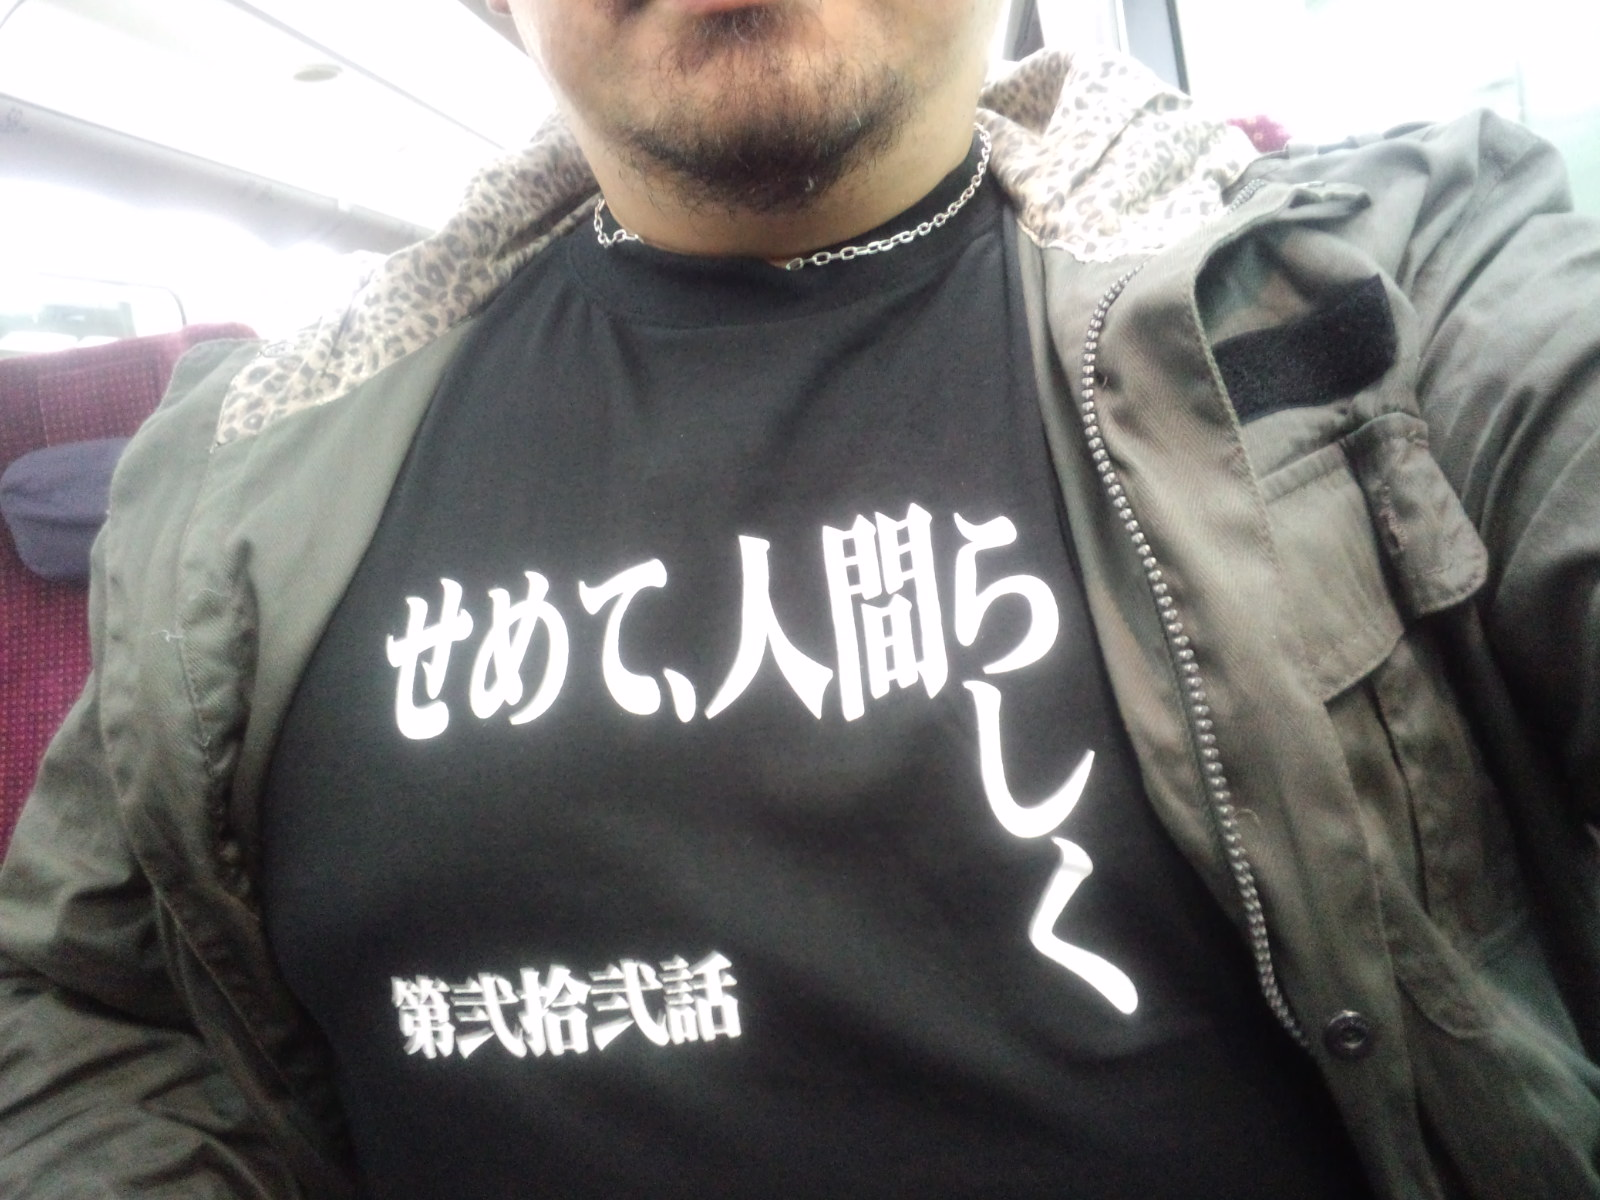 If only I could live as the phrase goes...